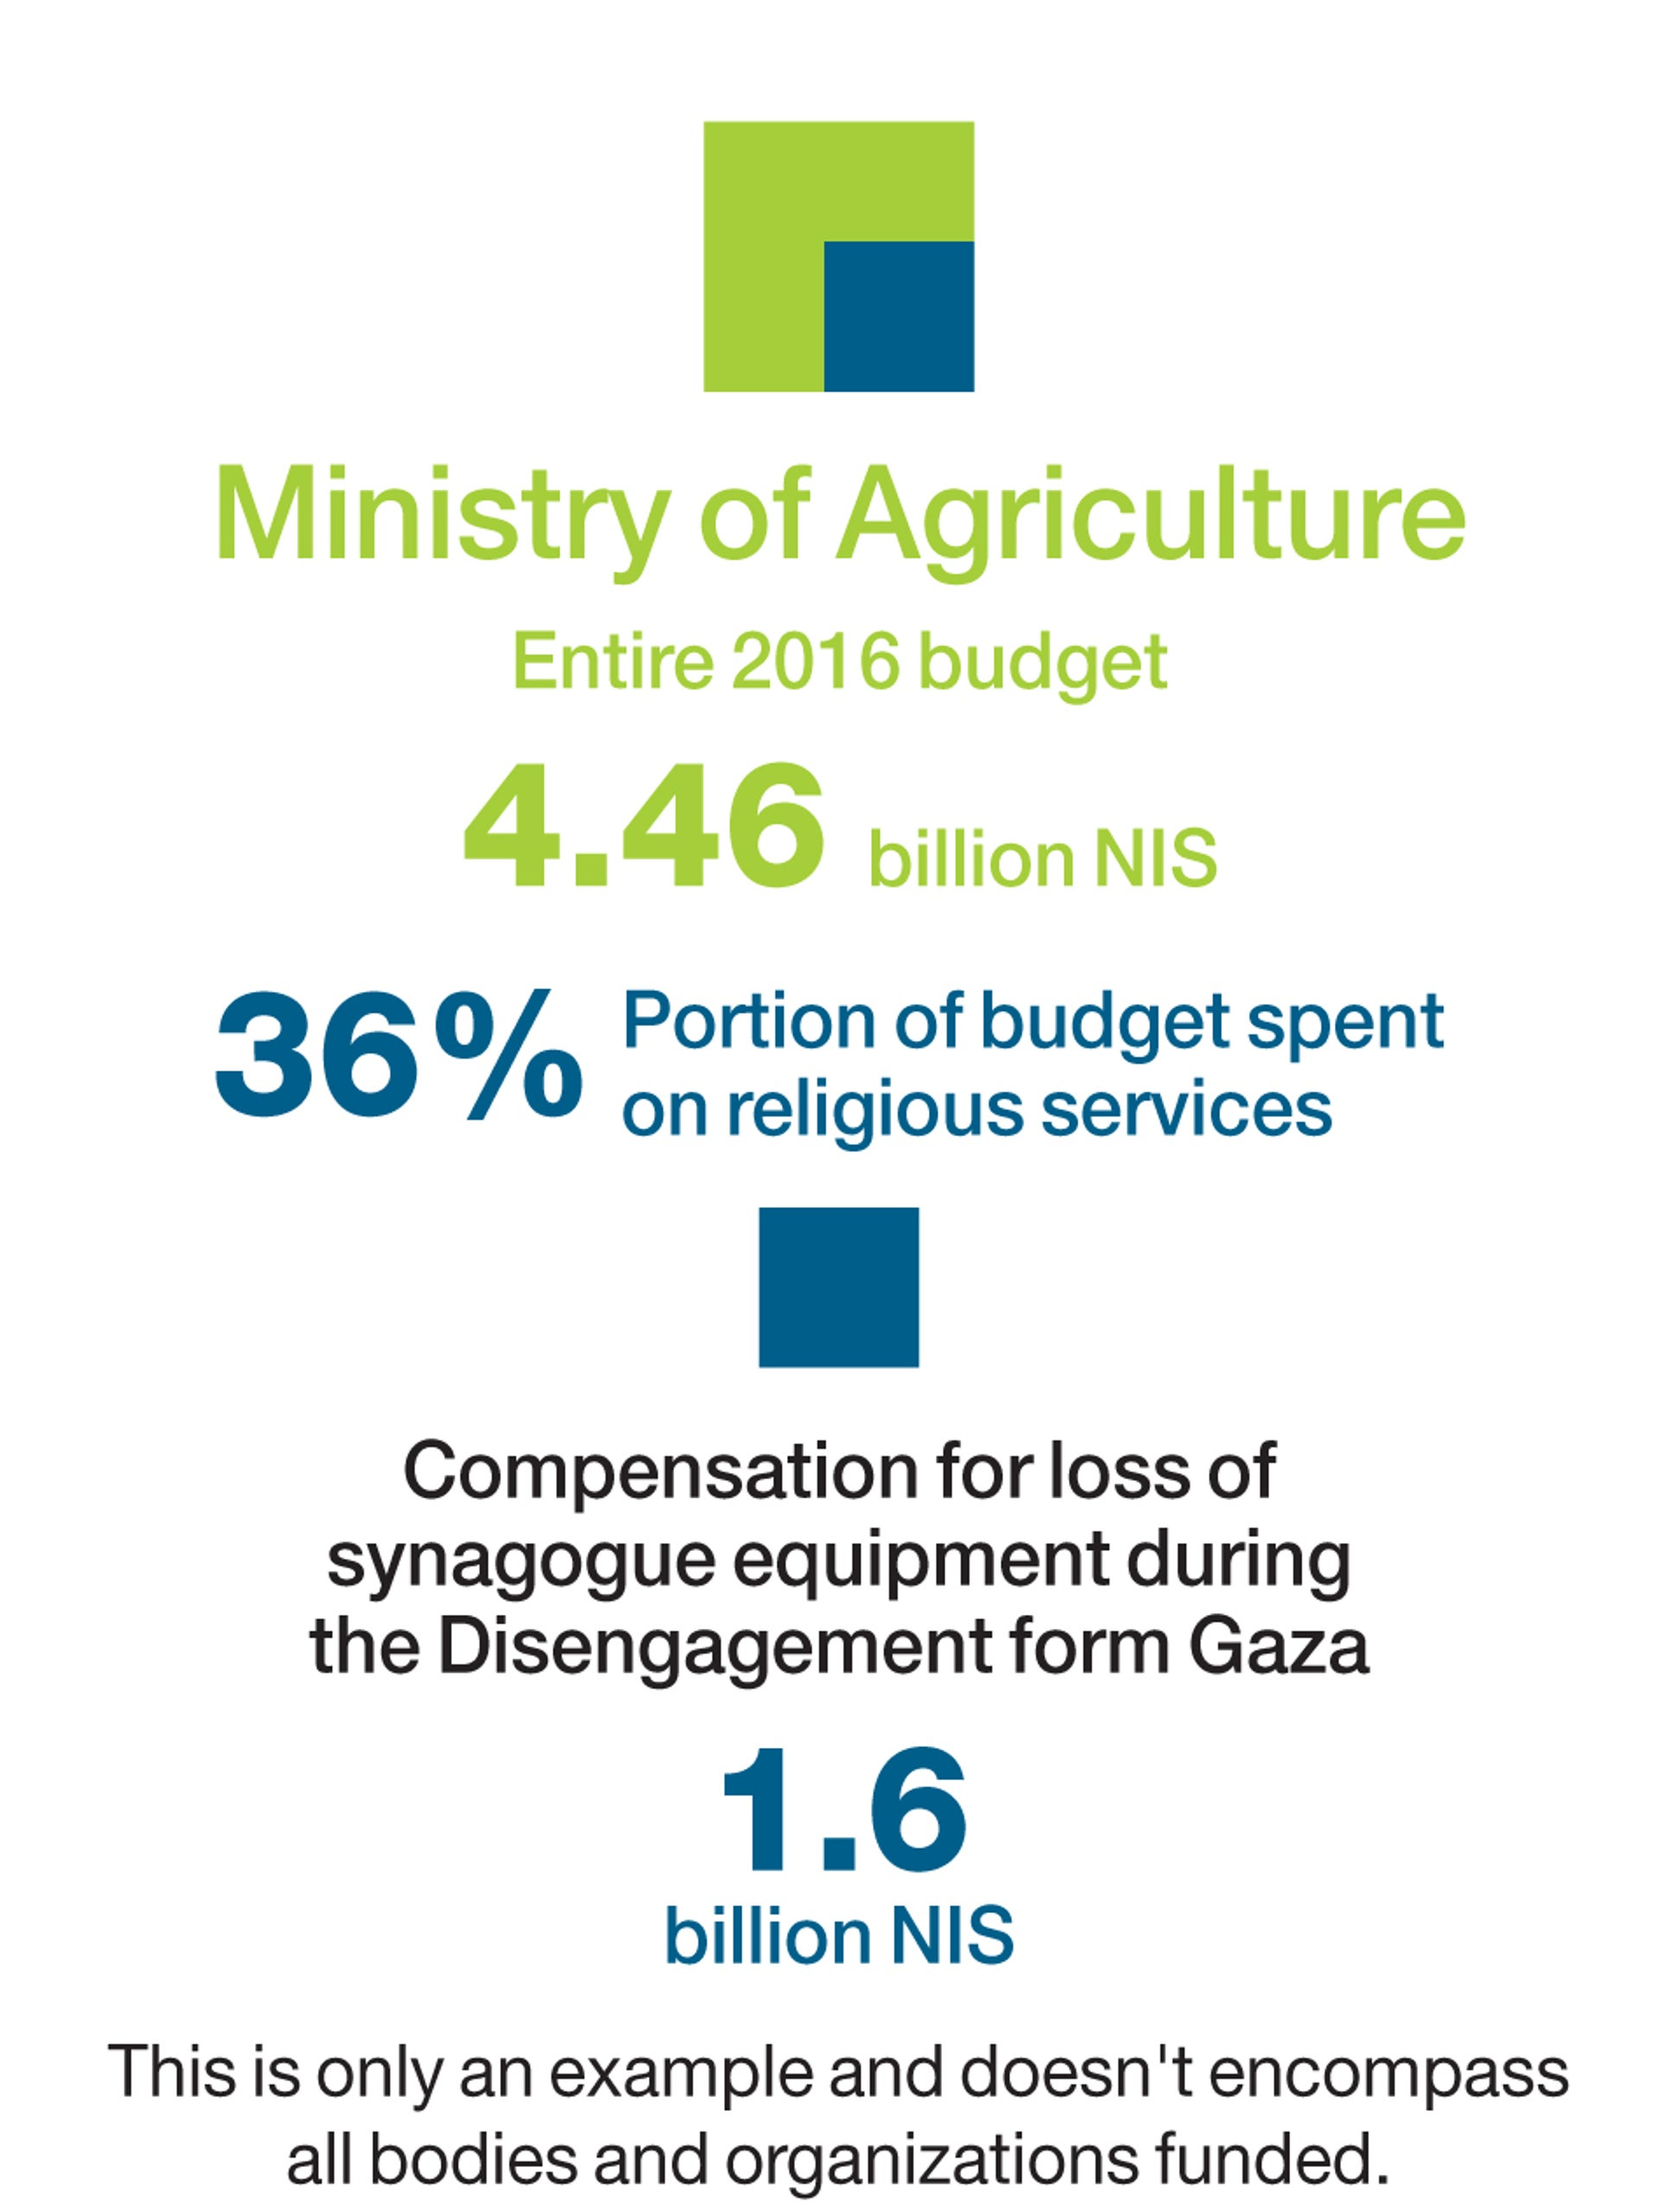 An infographic breaking down the Ministry of Agriculture 2016 budget.